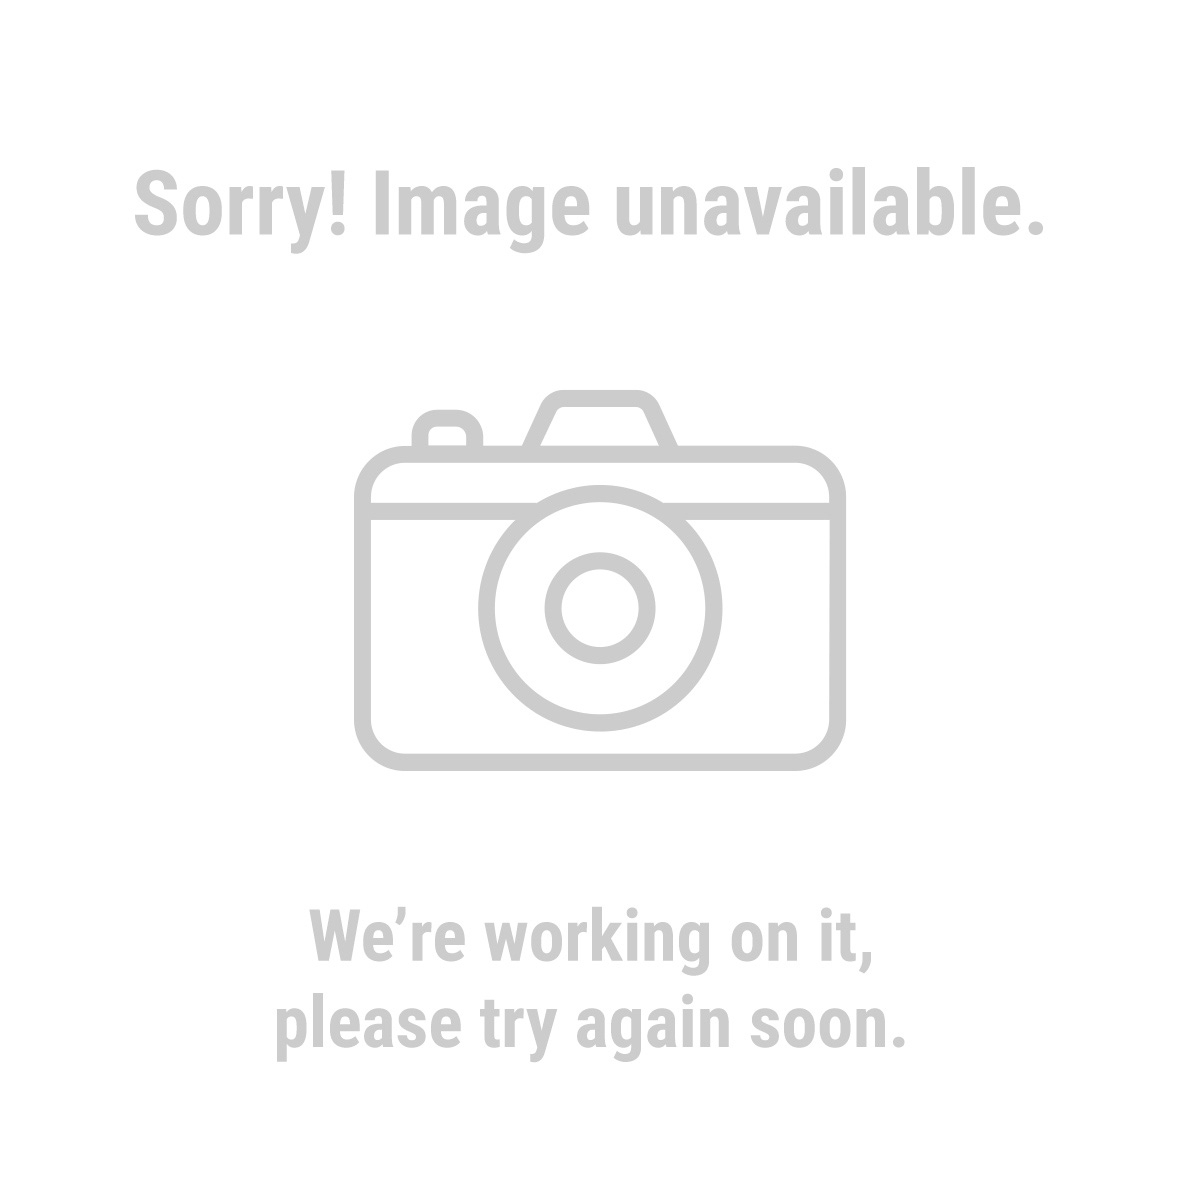 Storehouse 67587 20 Piece Storage Hook Set